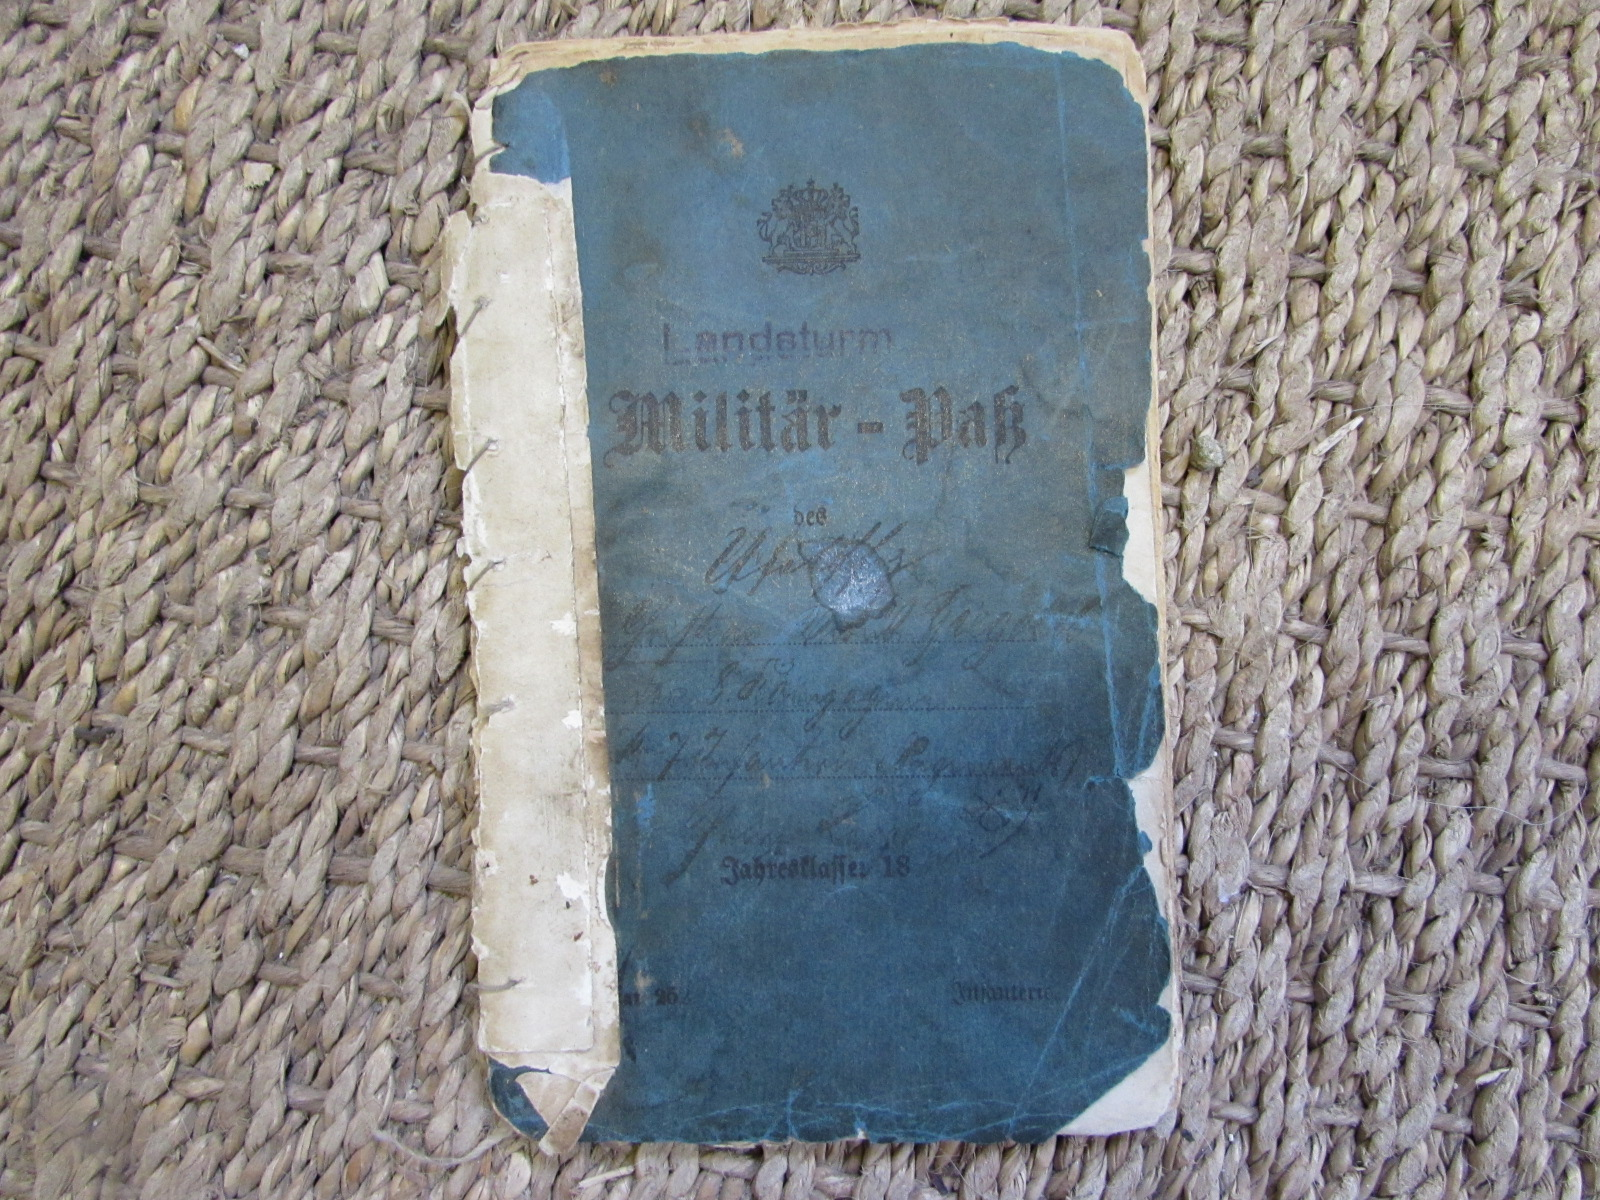 WW1 Military pass for the Lanstrum infantry 1